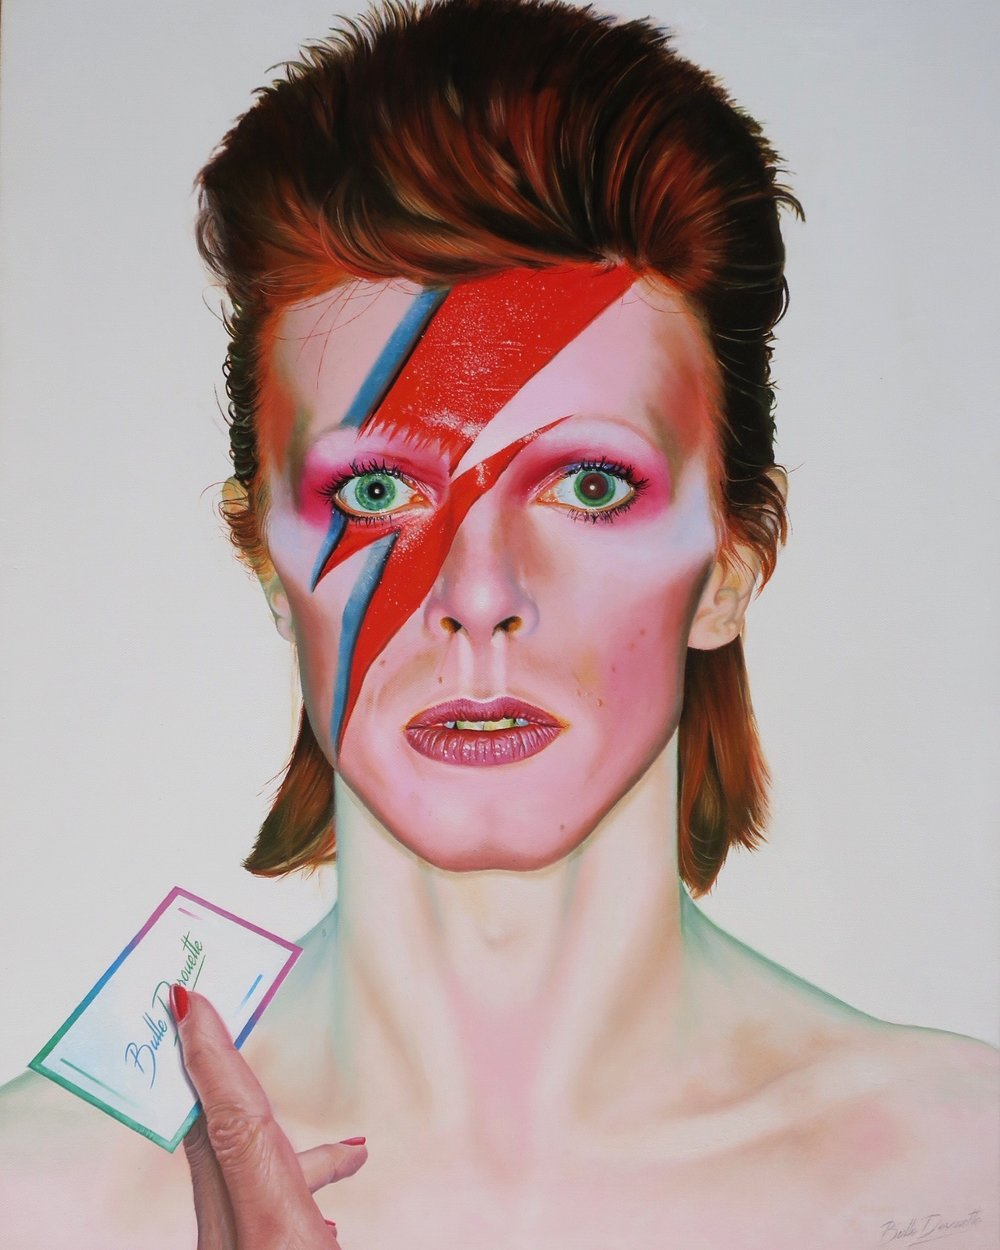 DAVID BOWIE, oil on canvas, 50x65 cm.